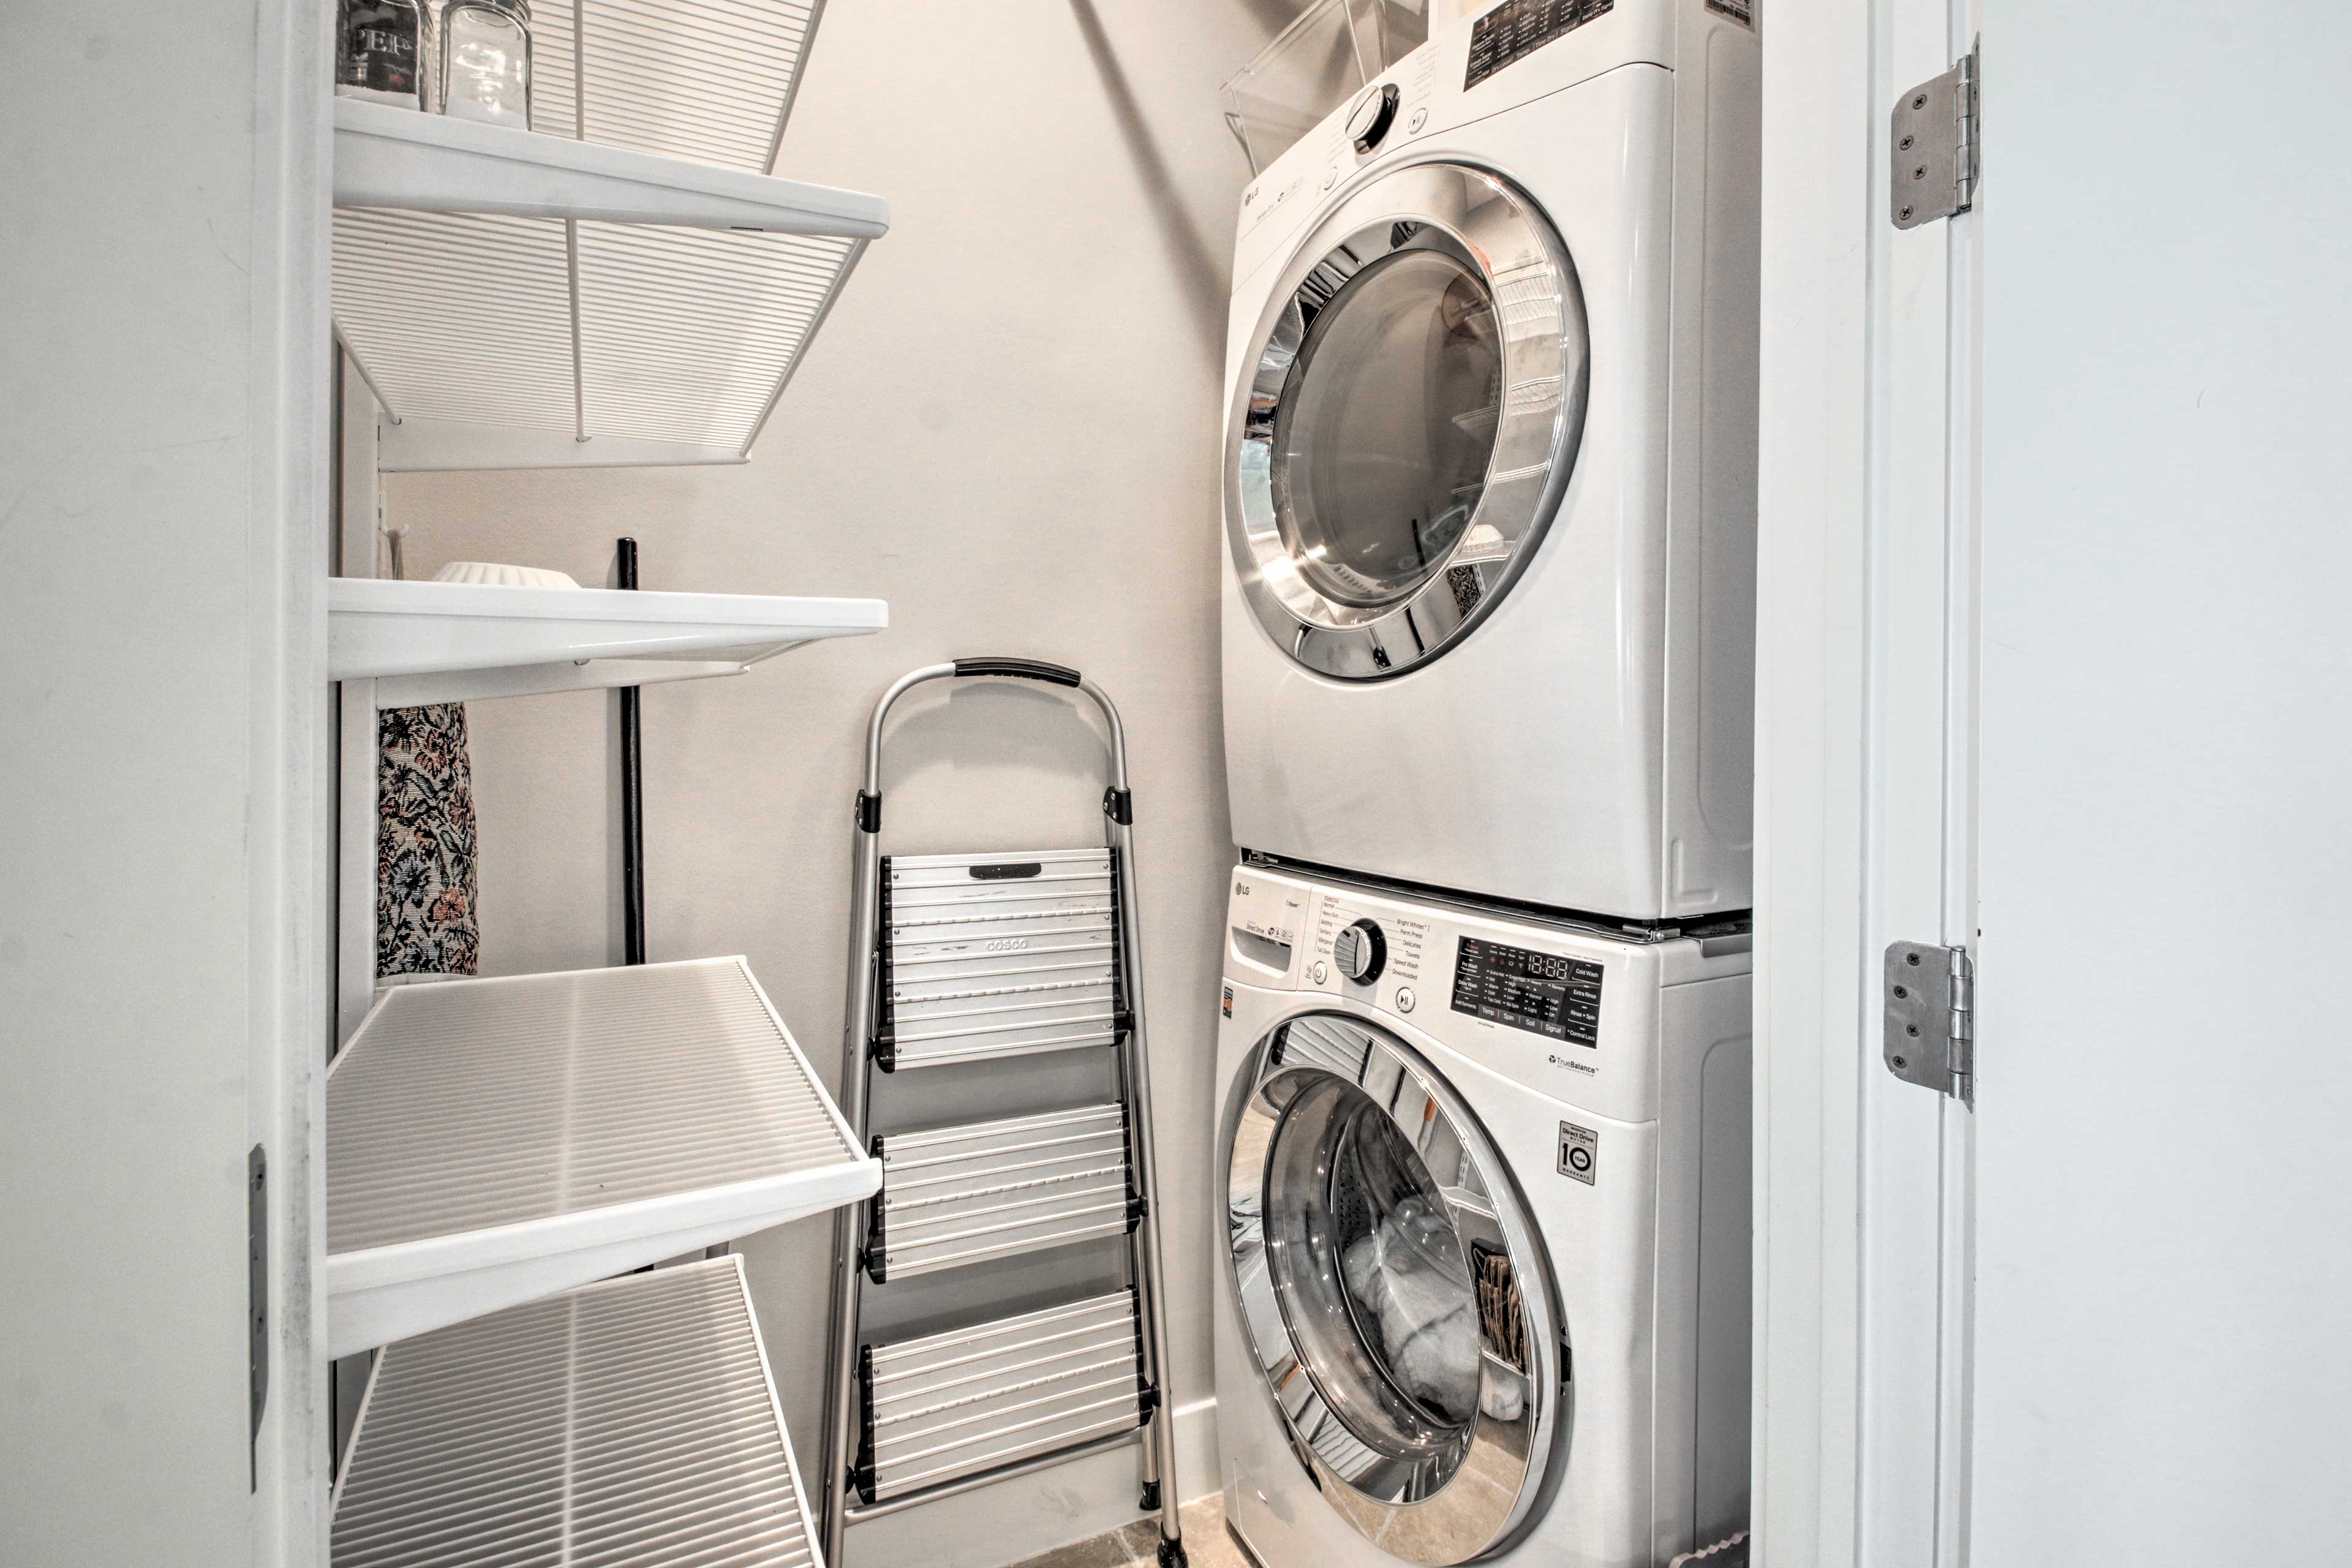 Rinse your clothes with these in-unit laundry machines.